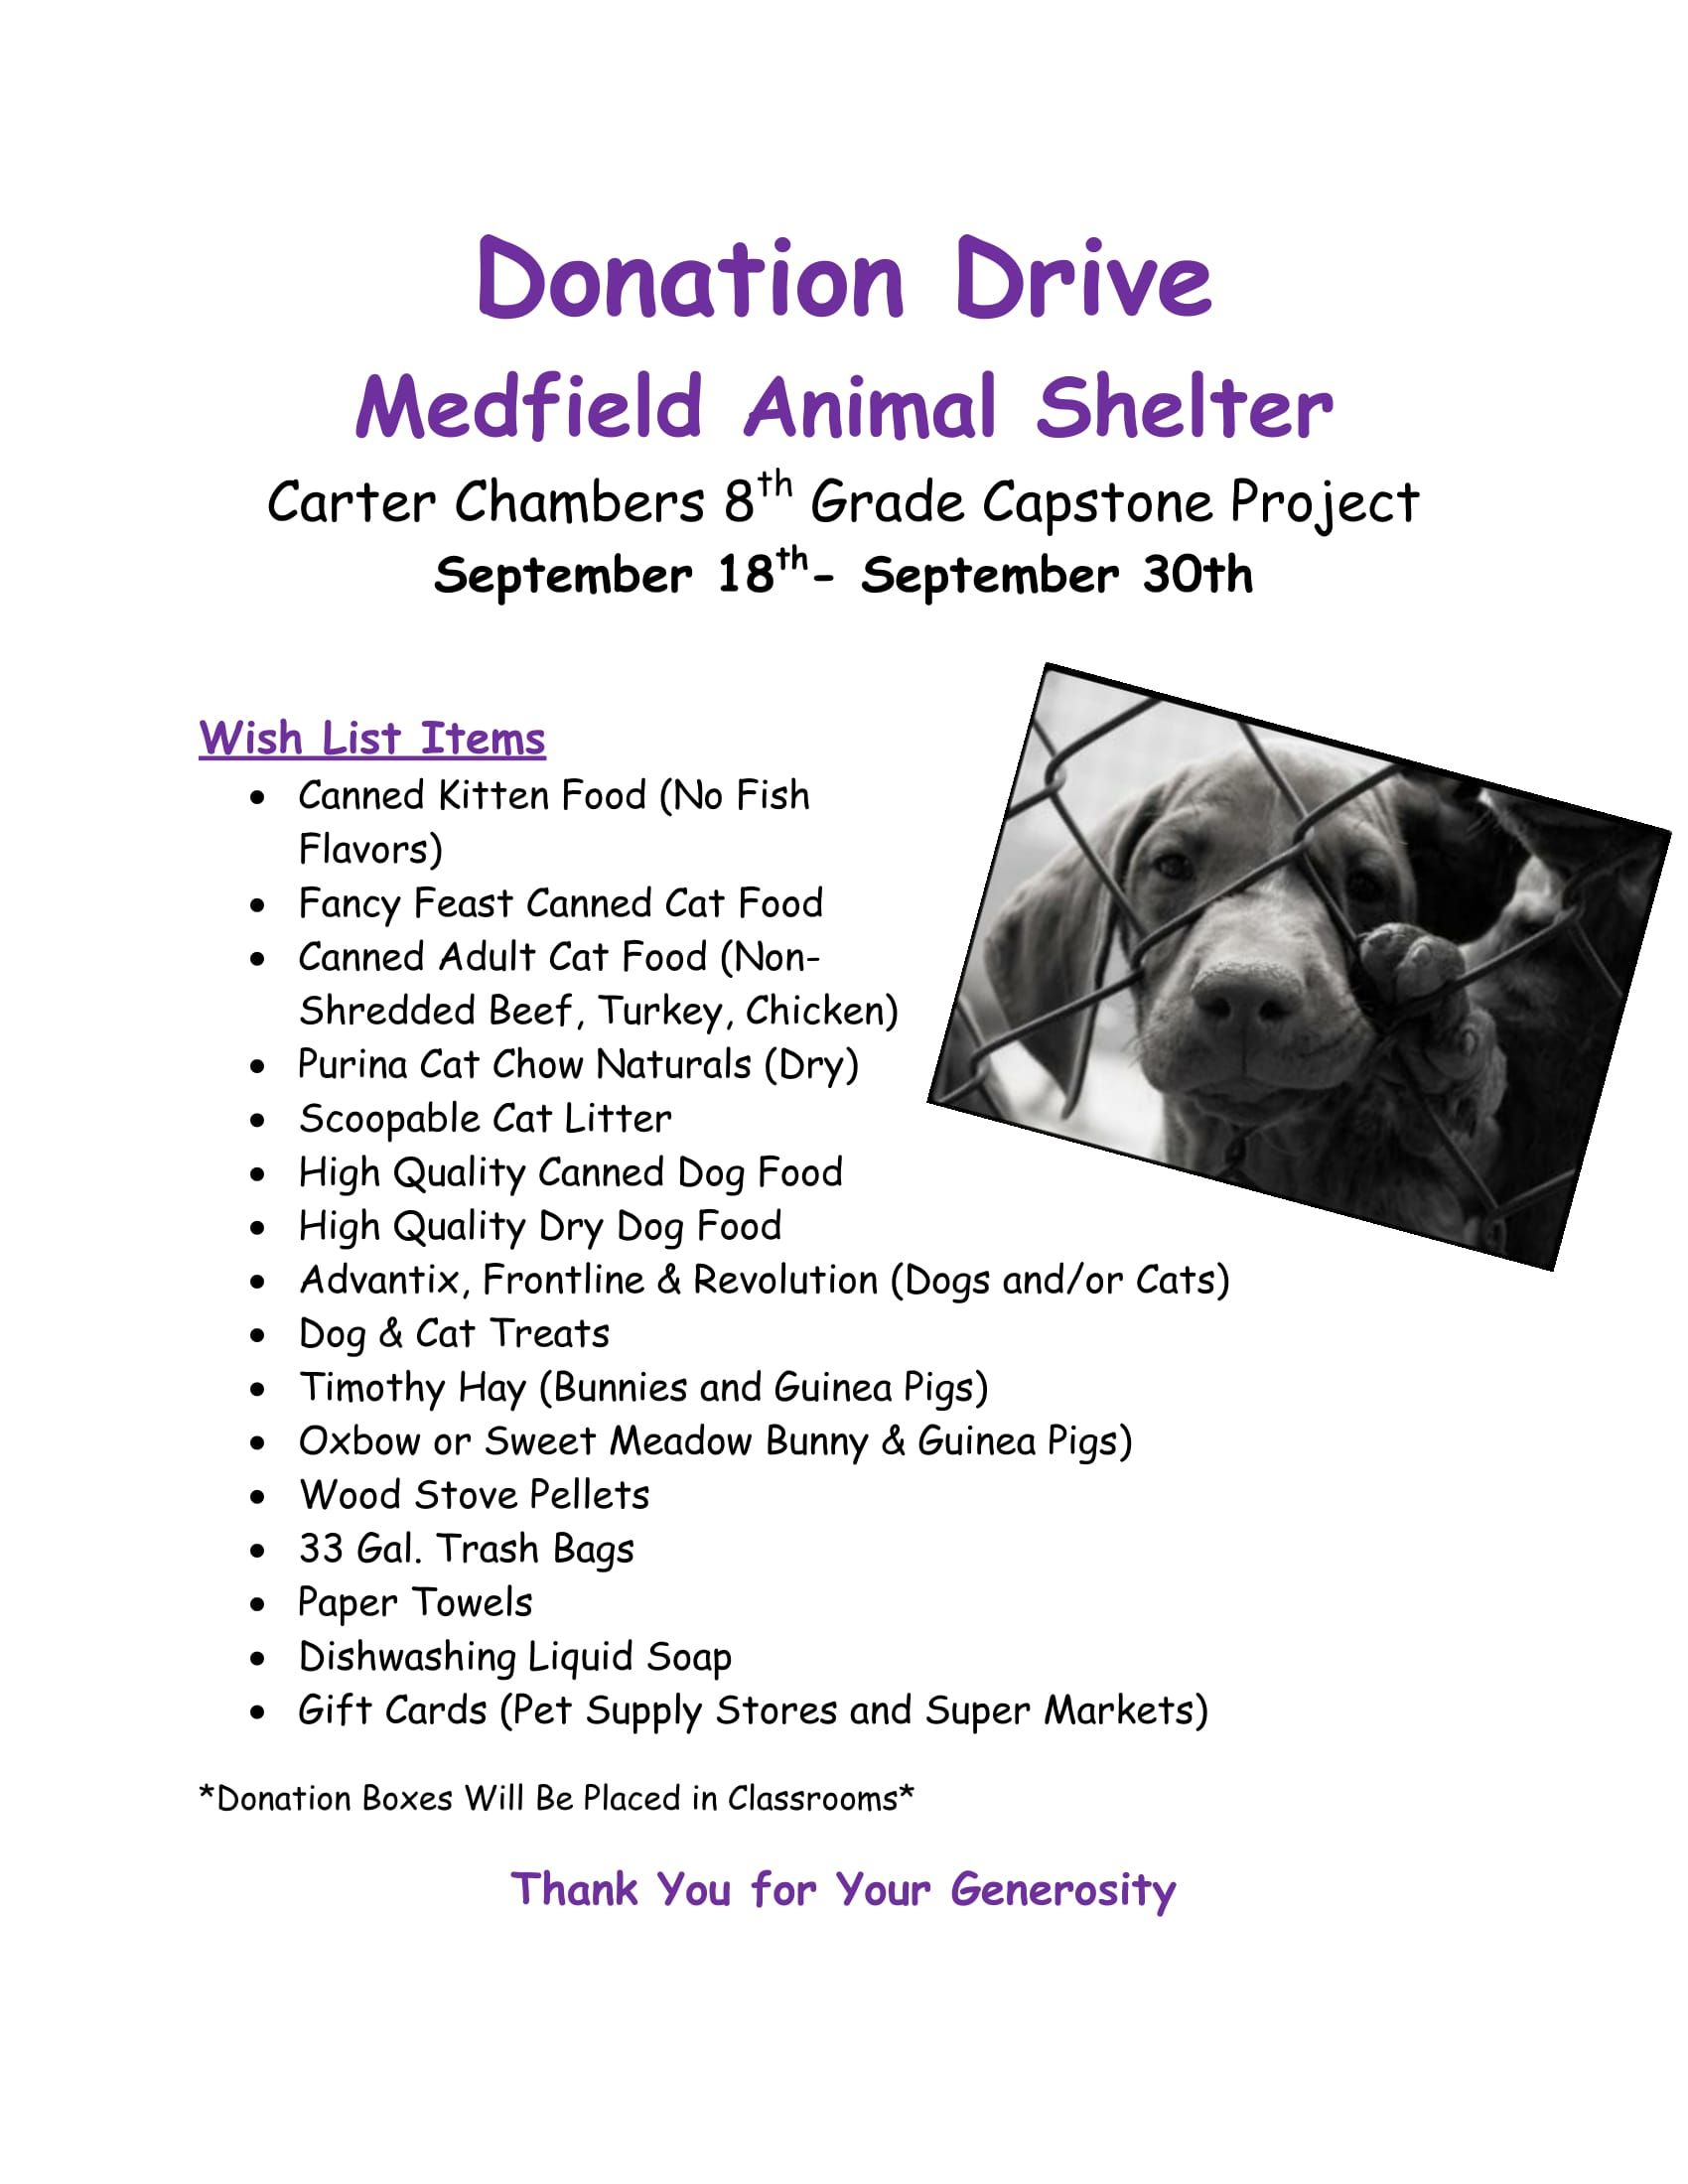 Animal Shelter Pillow Donation : Capstone: Medfield Animal Shelter Donations (through 9/30)BFCCPS